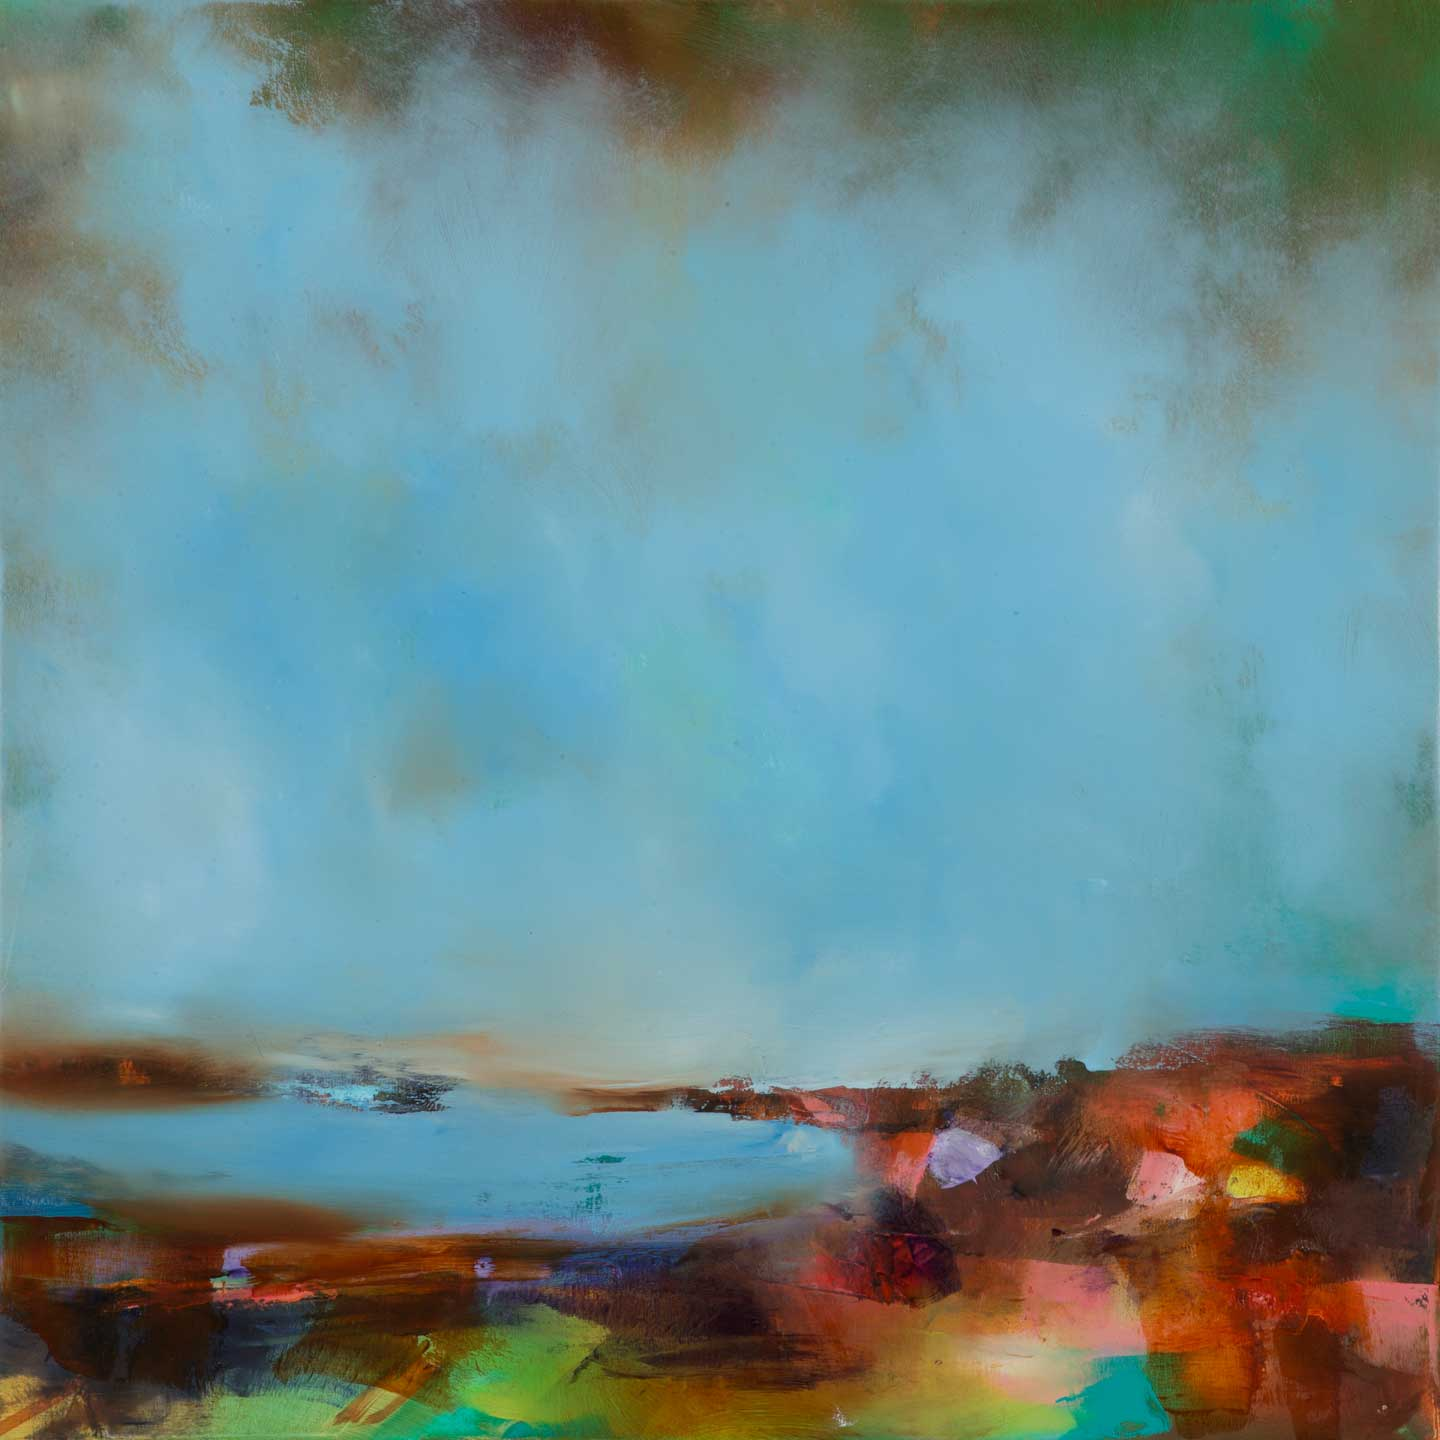 Laura Rich, Over to St Ives from Trencrom, oil o canvas, 70 x 70cms, web.jpg